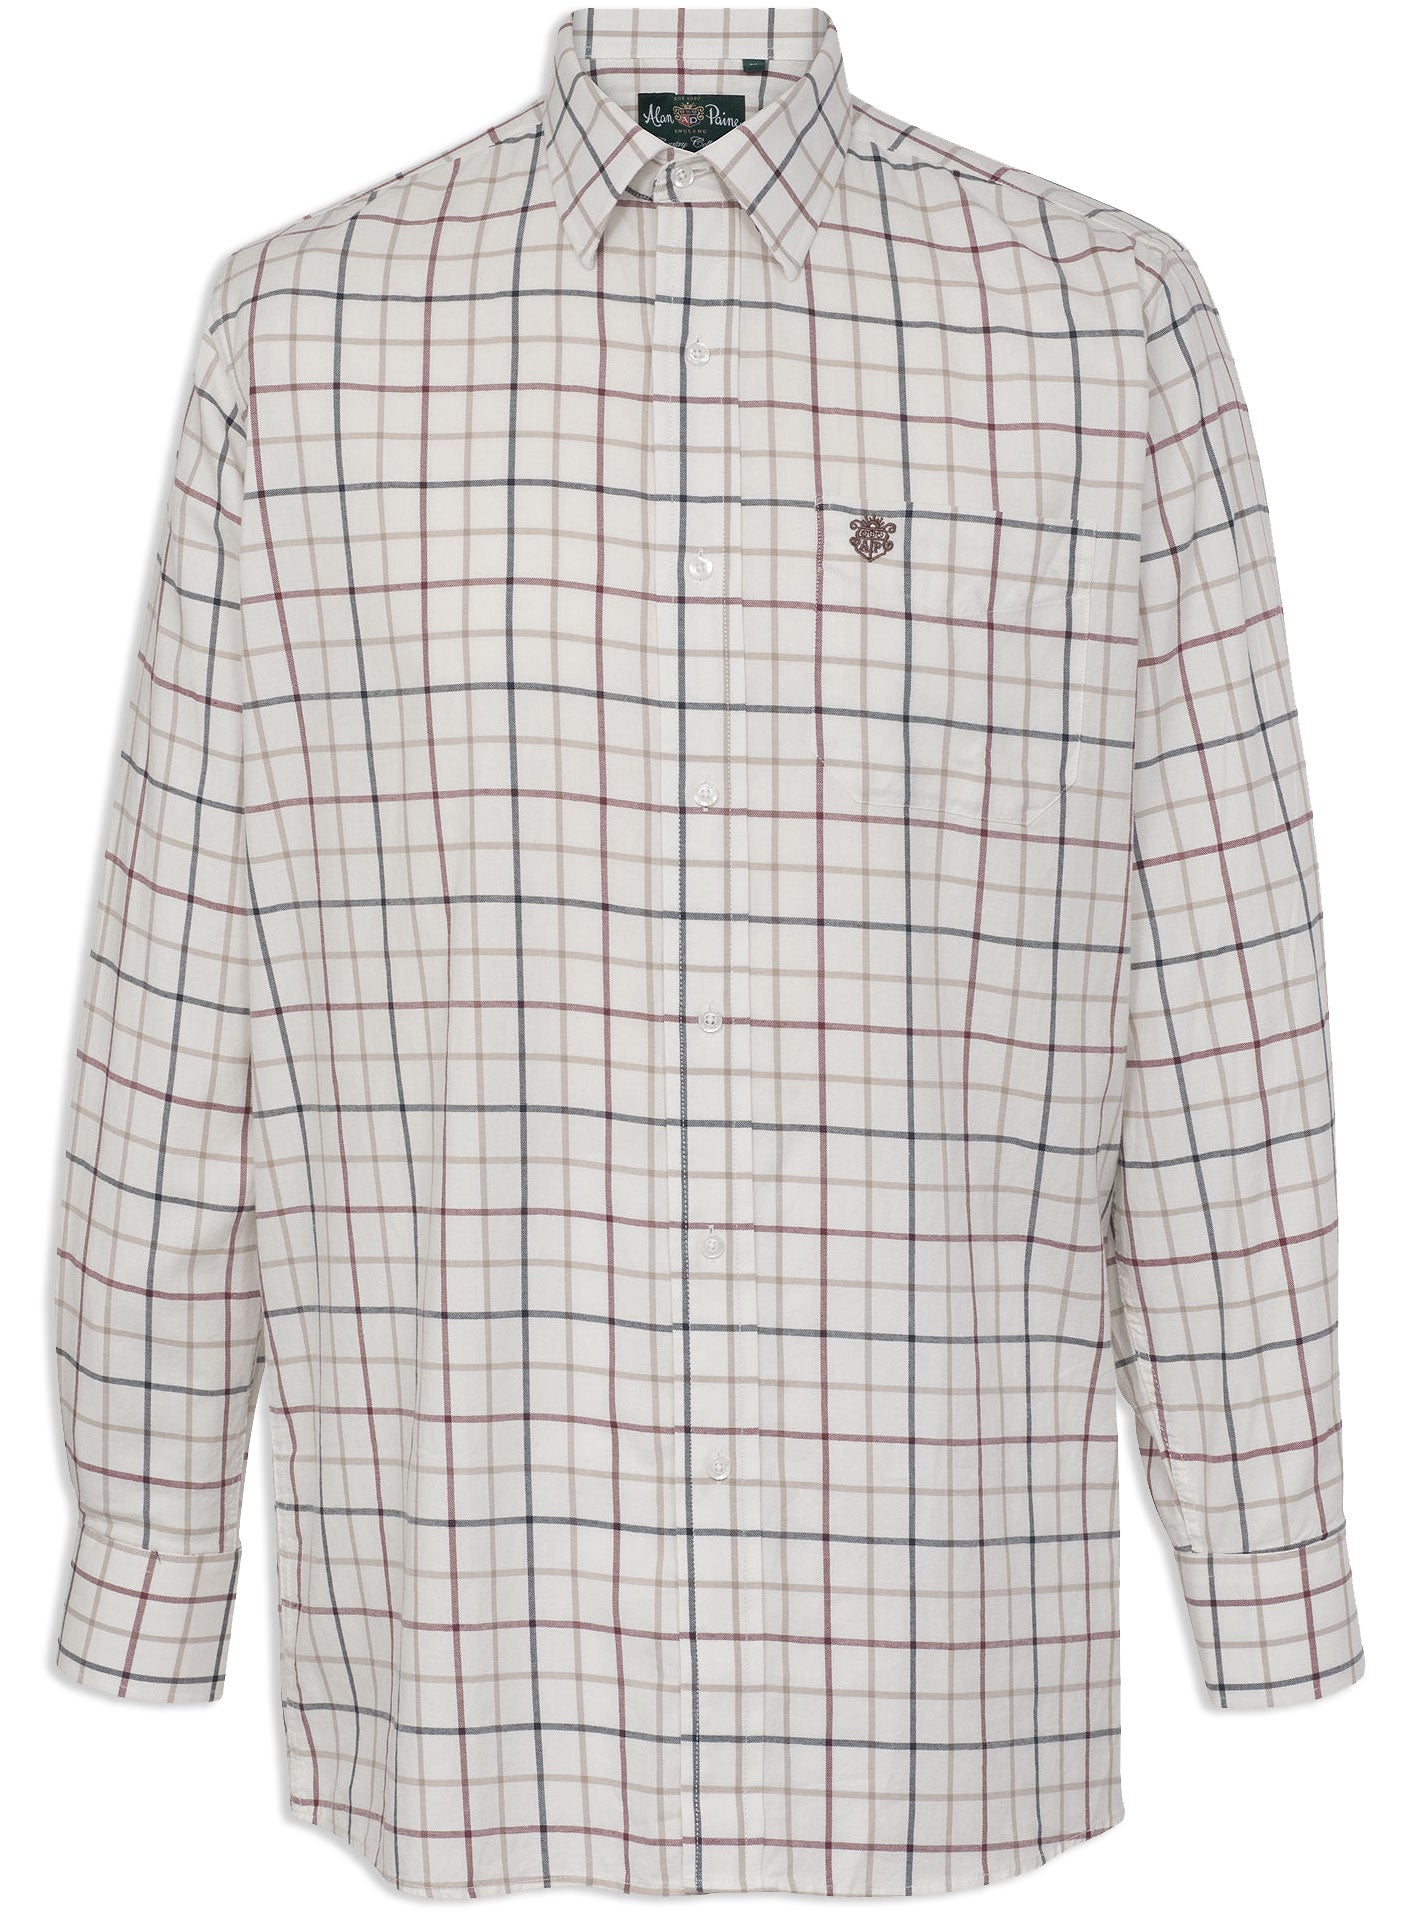 Alan Paine Ilkley Shirt | Red, Navy, Beige tattersal wide pane check